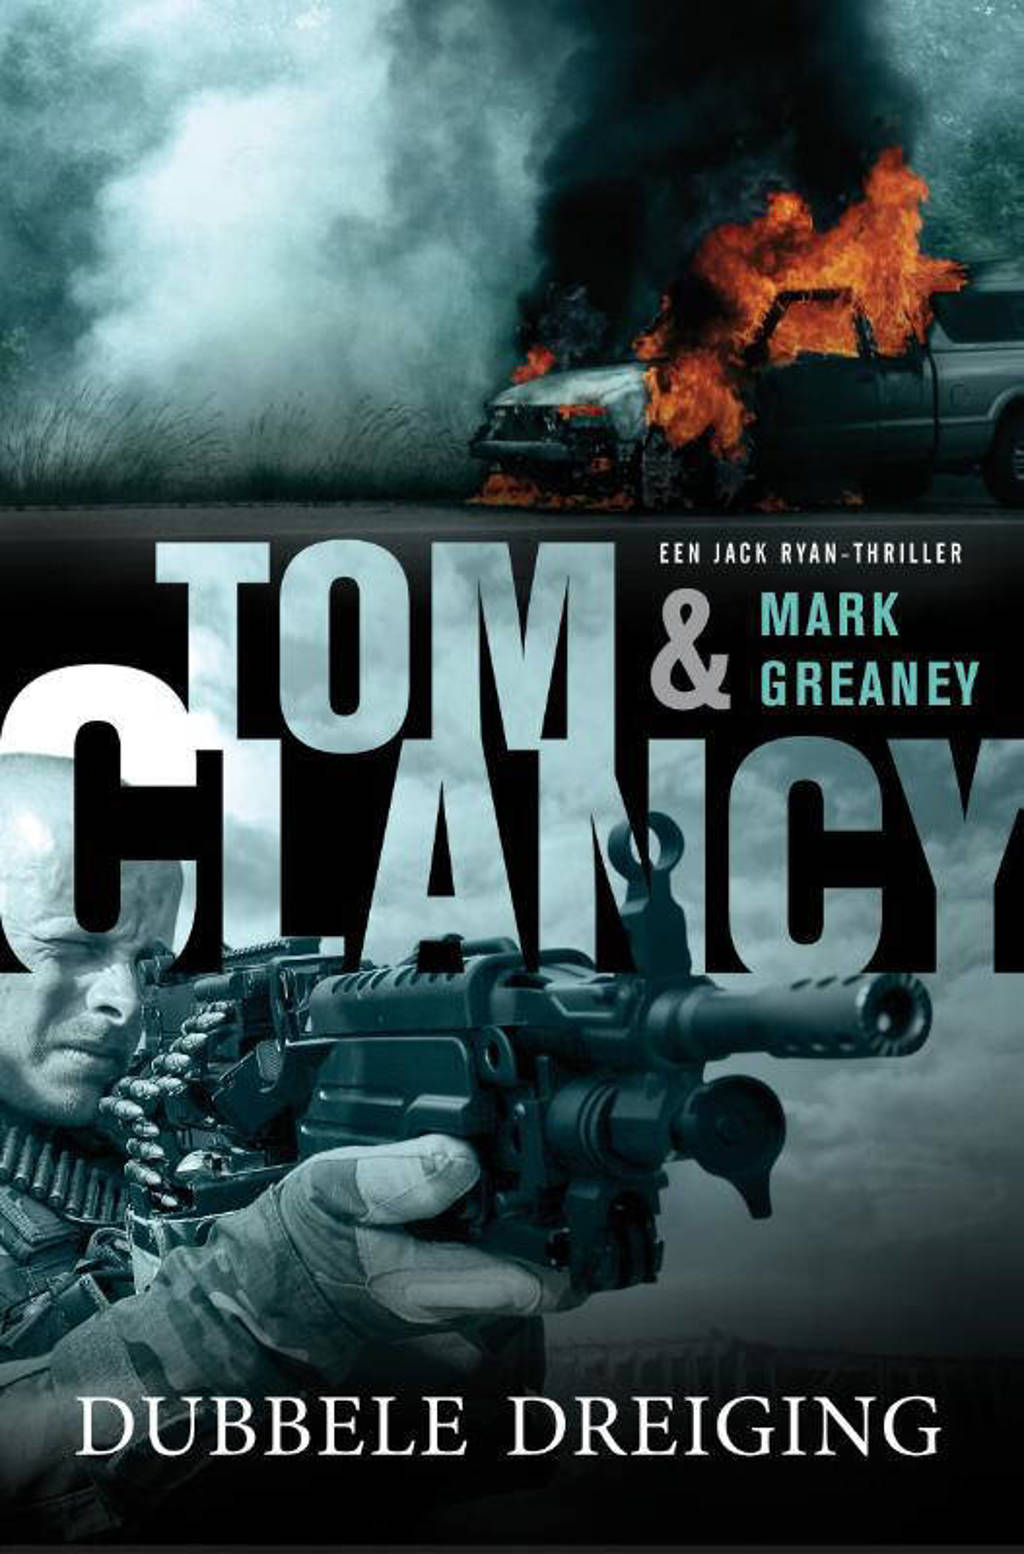 Jack Ryan: Dubbele dreiging - Tom Clancy en Mark Greaney